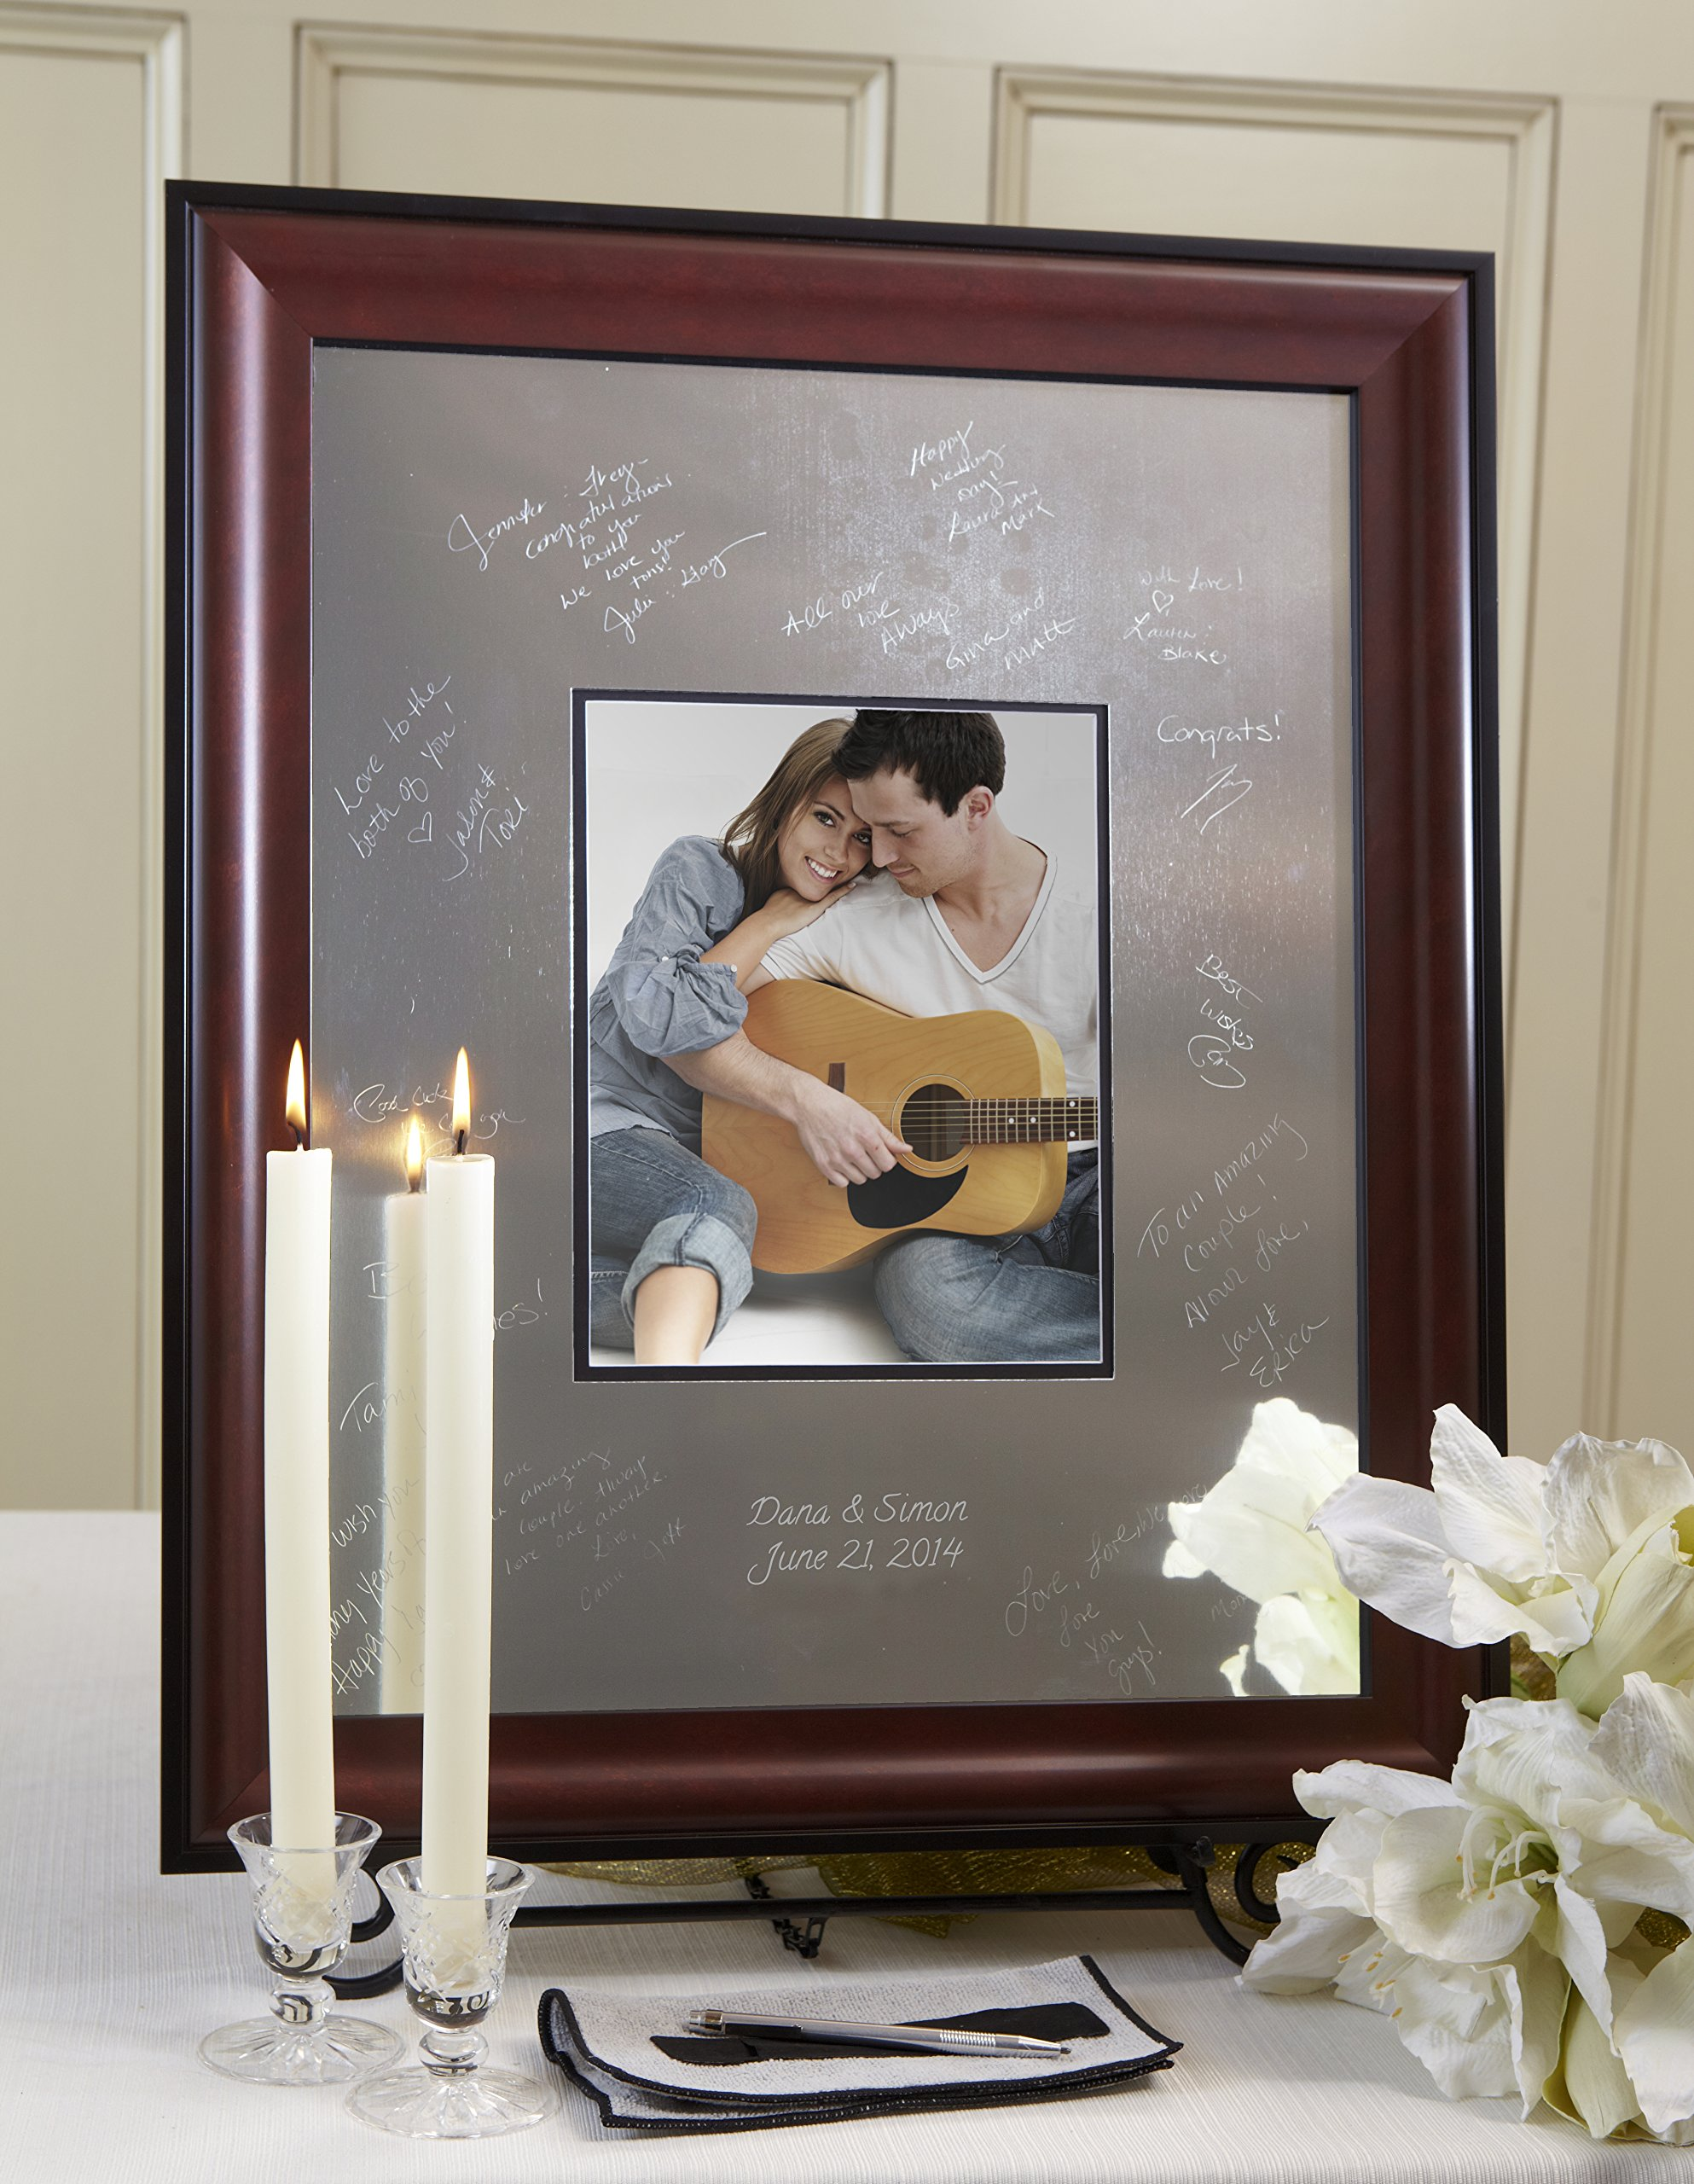 Signature Keepsakes Frame Engravable Signature Mat Guest Book, Medium, Silver/Mahogany/Black by Signature Keepsakes